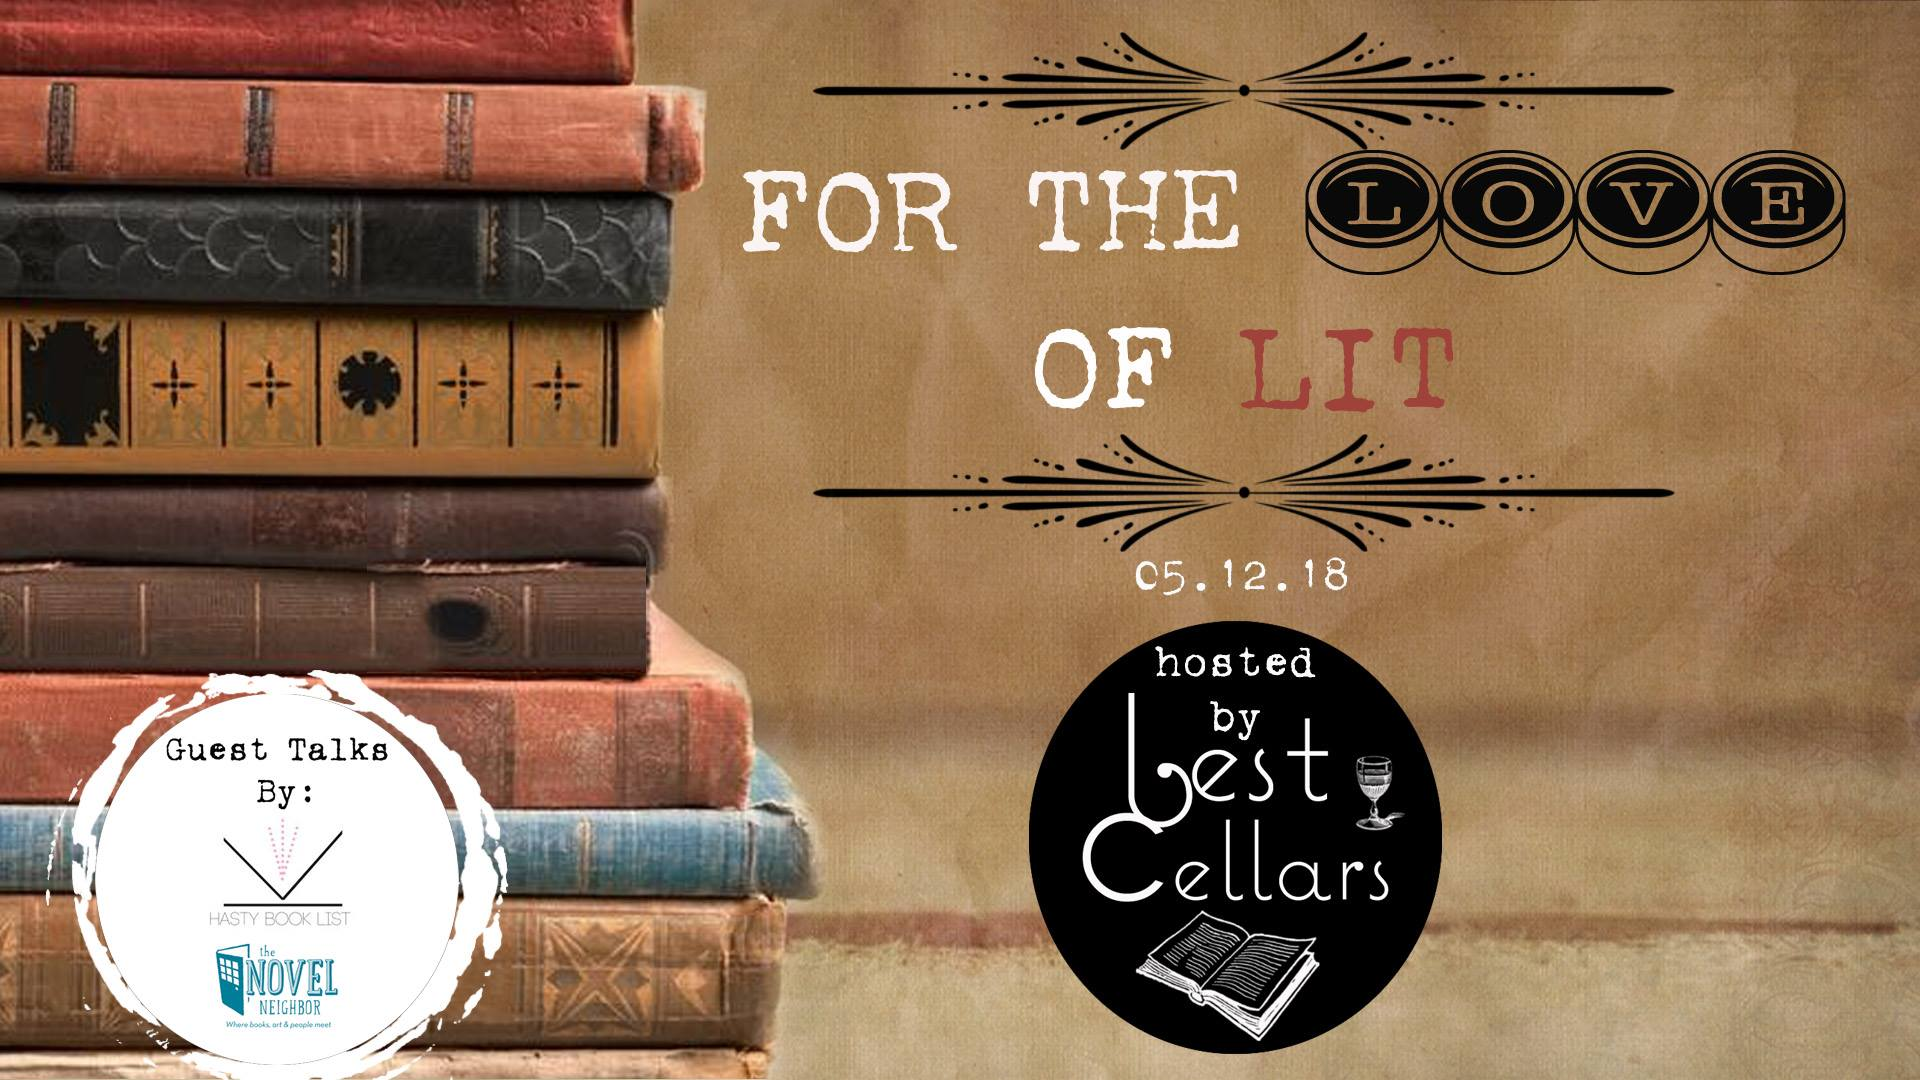 For the Love of Lit with BestCellars, the Novel Neighbor, and HastyBookList on May 12, 2018